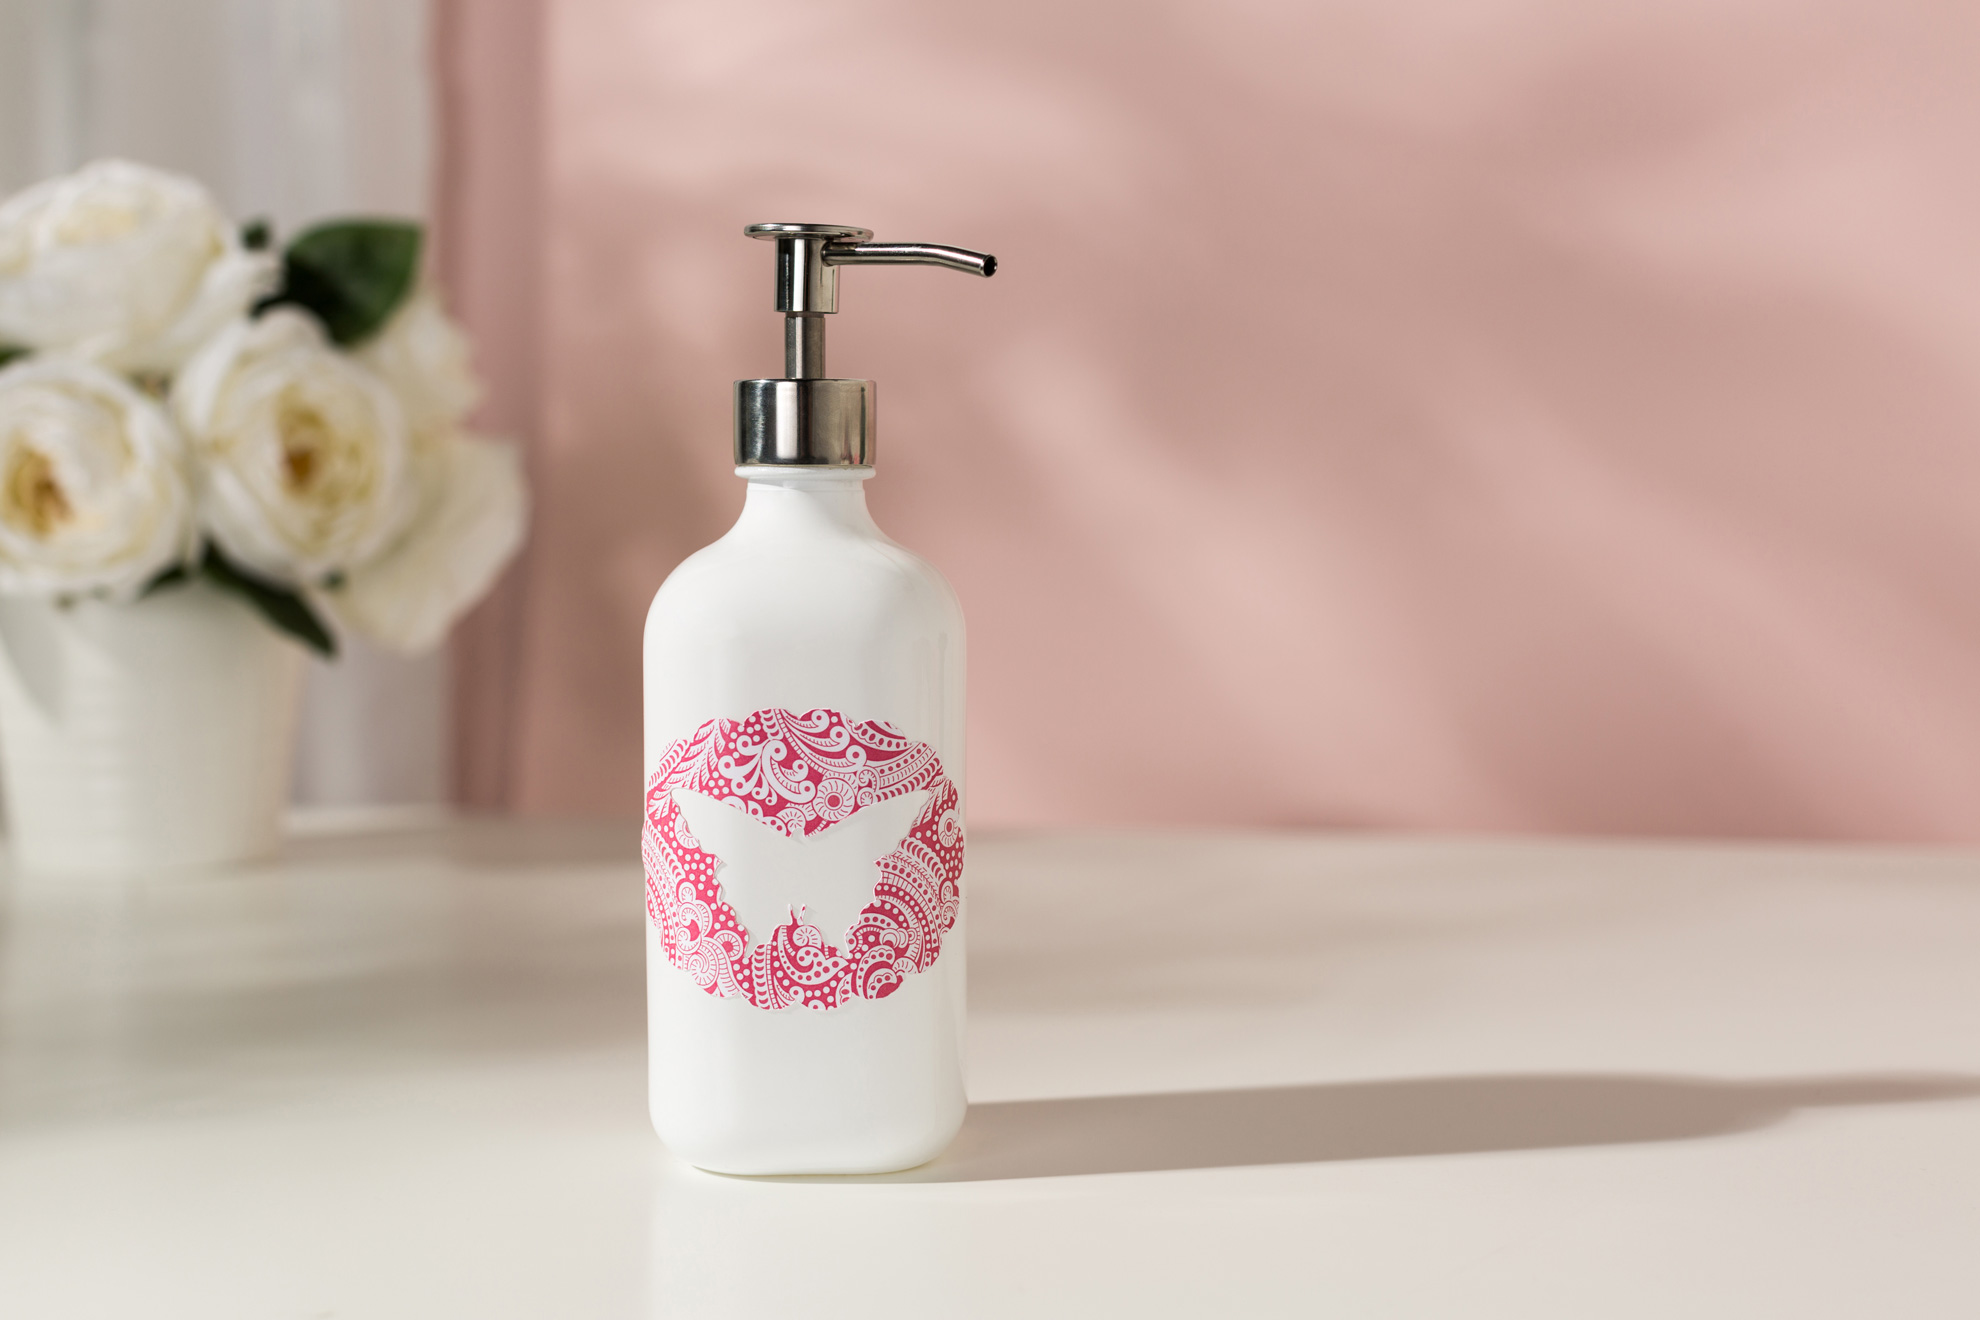 soap dispenser with butterfly design